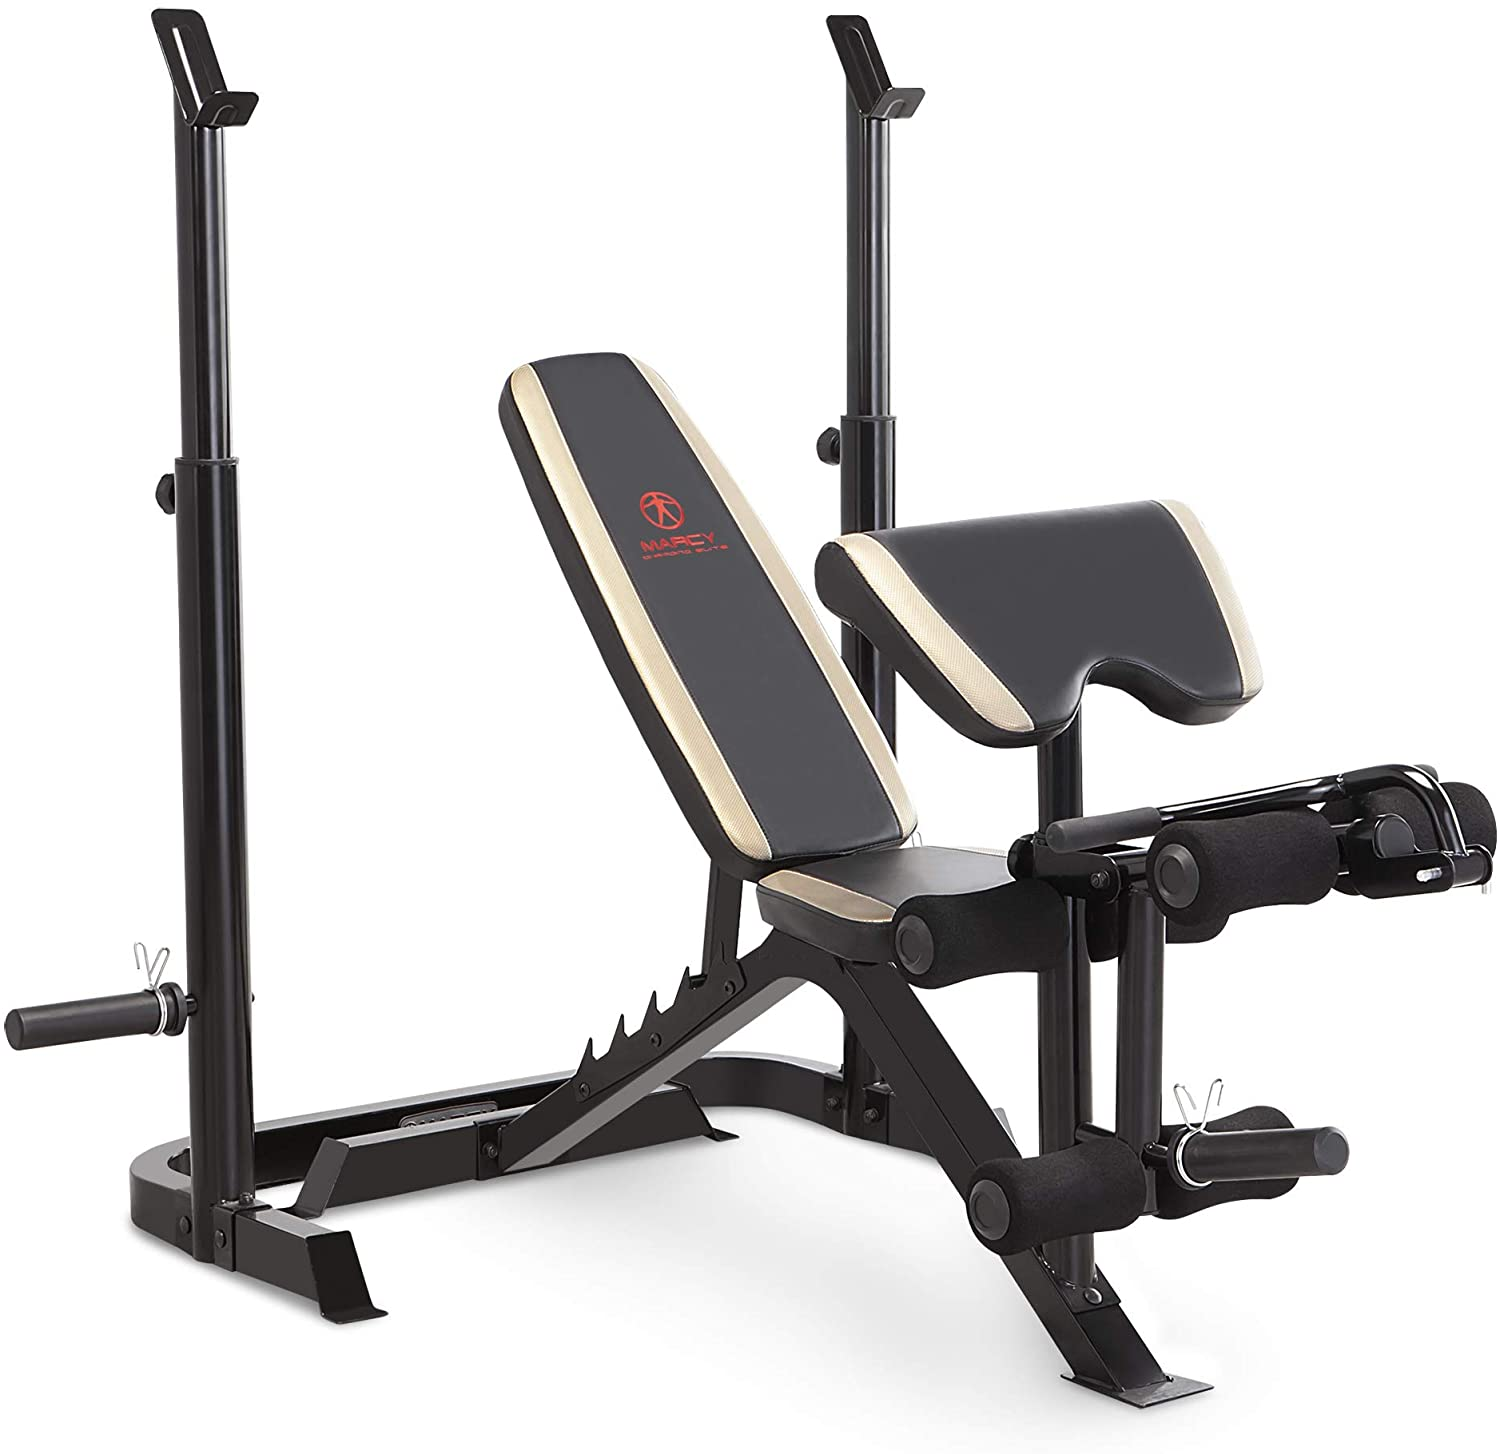 Marcy MD-879 Adjustable Olympic Weight Bench with Leg Developer and Squat Rack